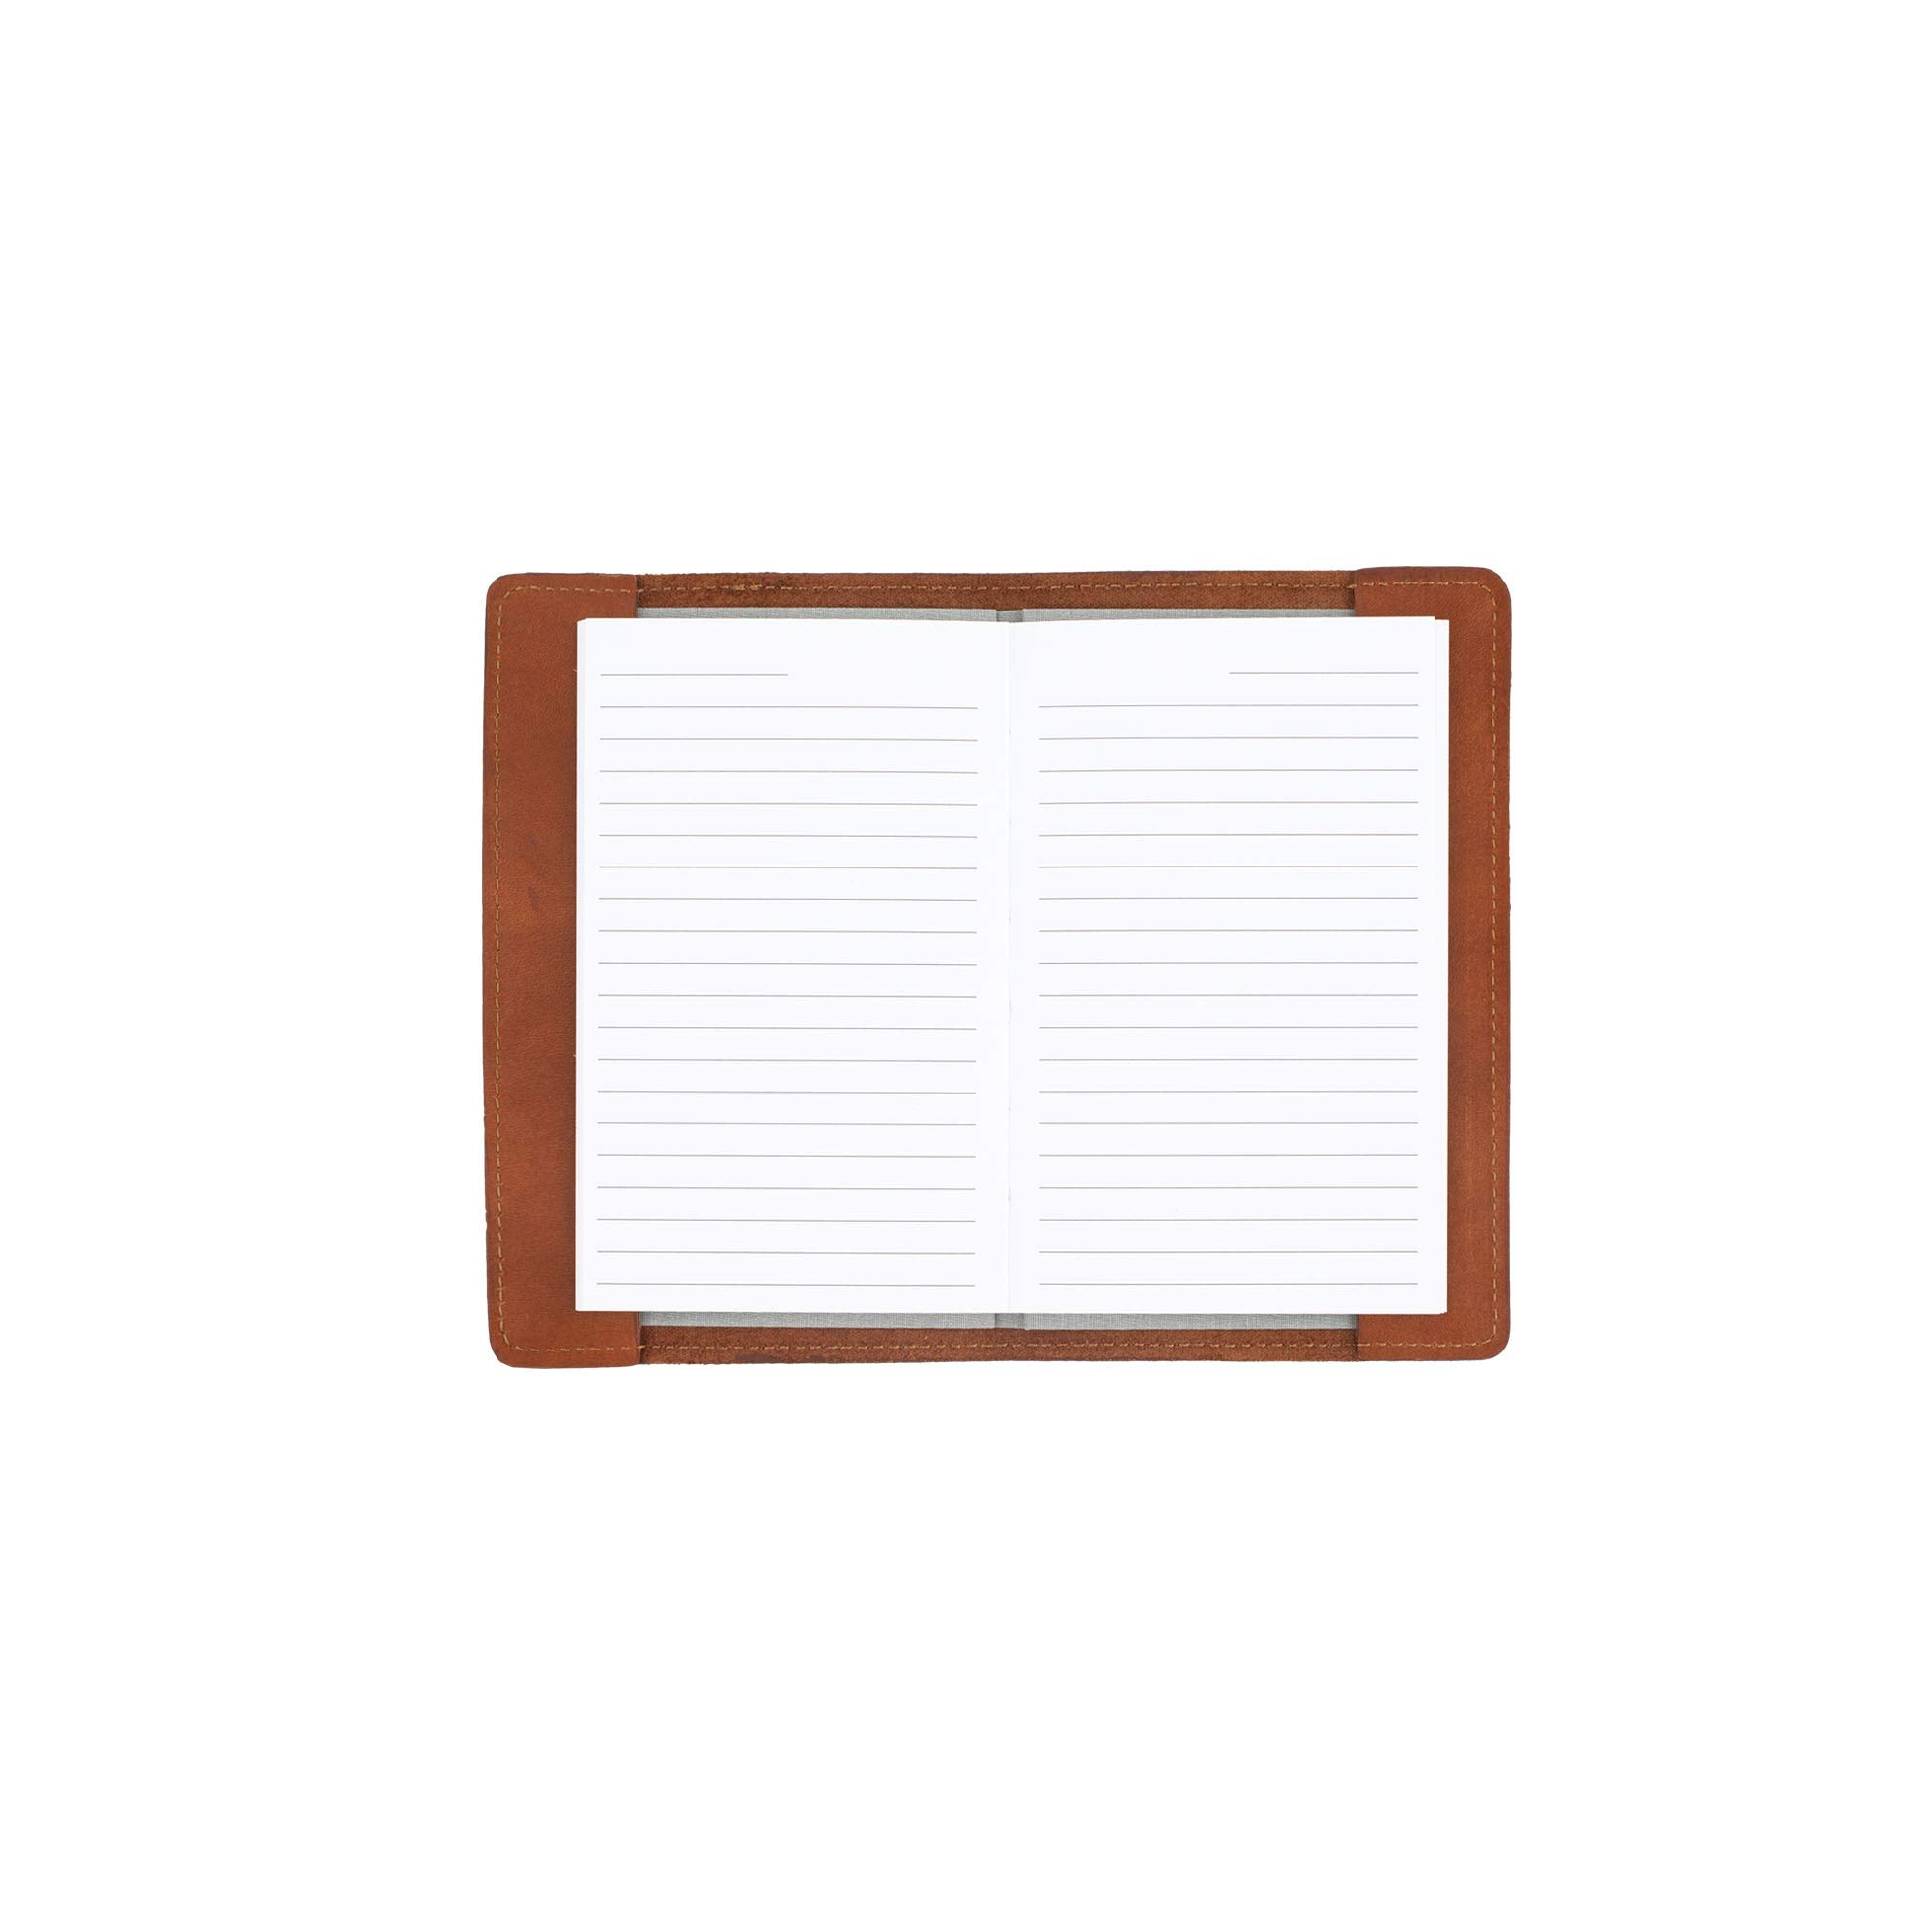 SLATE COLLECTION Mercer Refillable Journal, Full-Grain Leather (Cognac, Mini, Lined) by SLATE COLLECTION